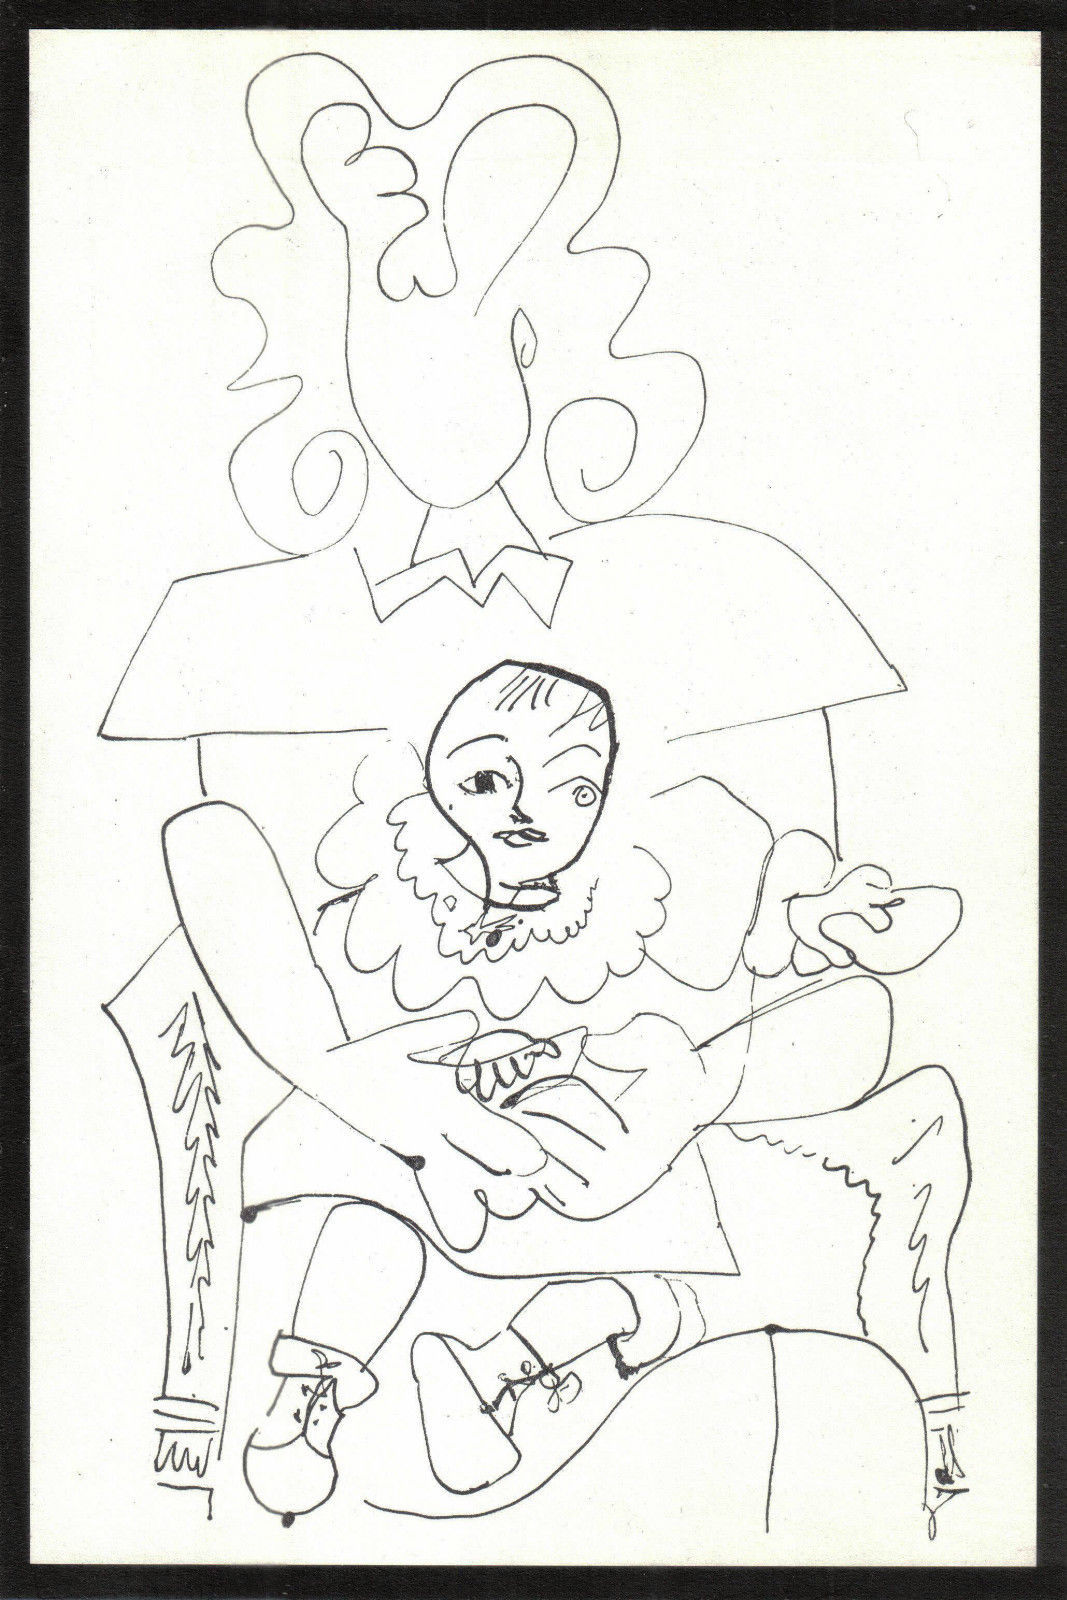 PABLO PICASSO 1956 LITHOGRAPH w/COA. CLASSIC £ € UNIQUE, MUST HAVE VERY RARE ART